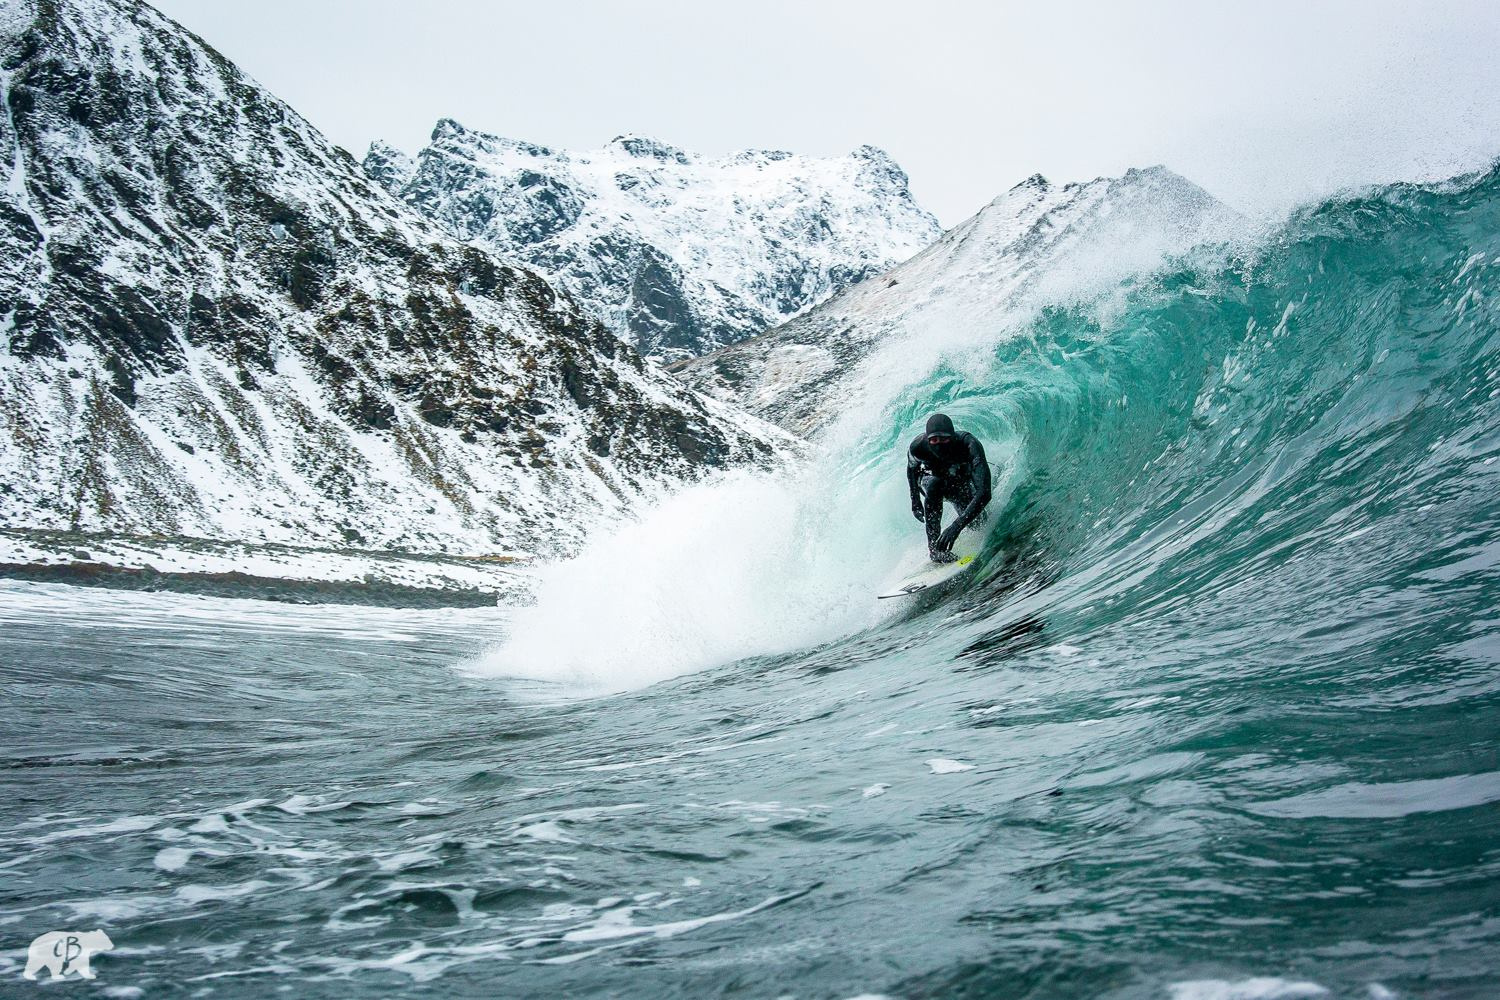 Chris Burkard at TED: The Joy of Arctic Surf Photography